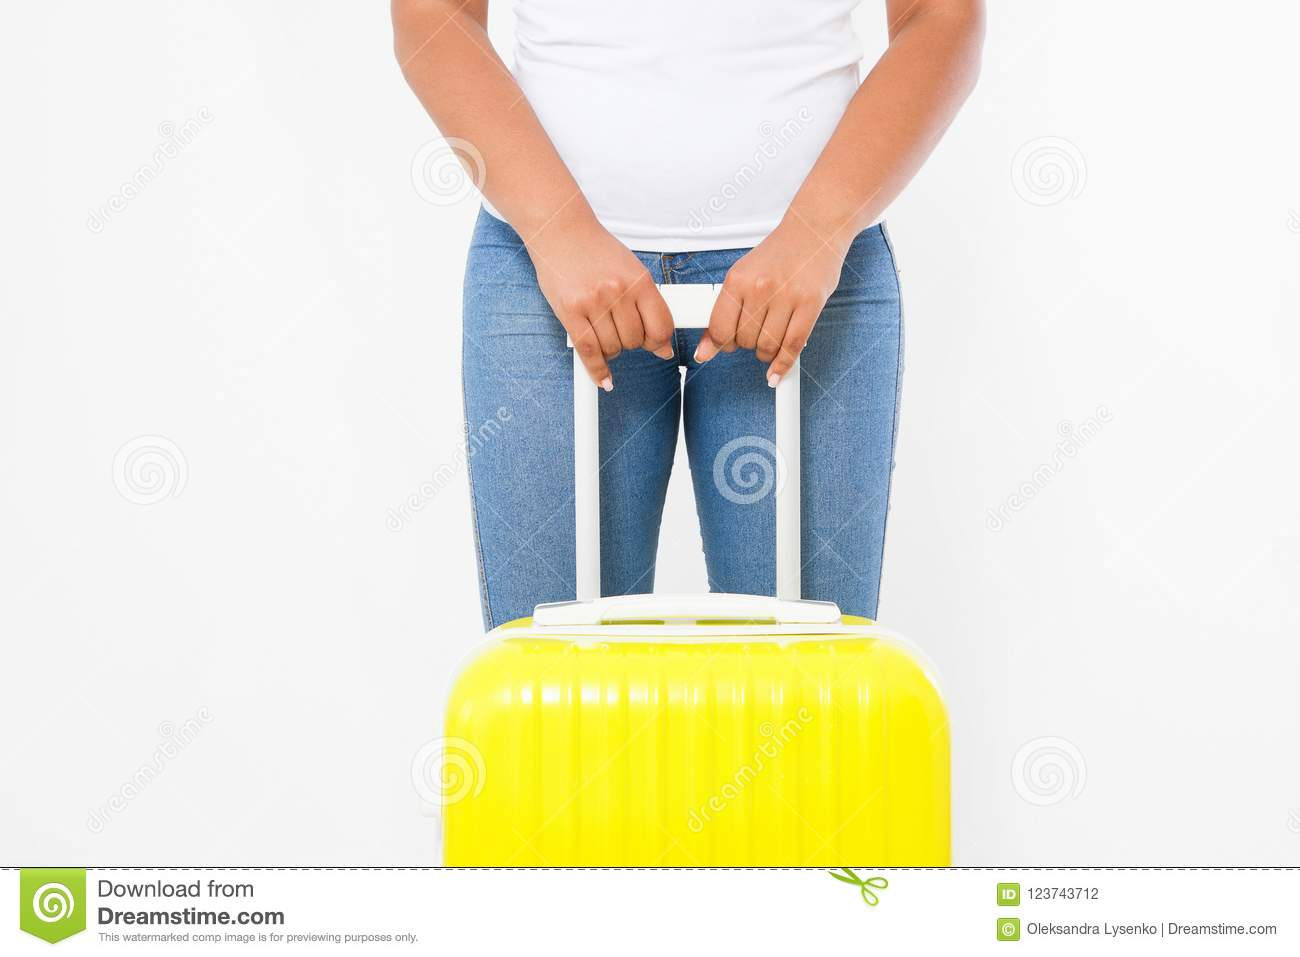 Summer fun holiday. Afro american woman with yellow suitcase isolated on white template and blank background. Work and travel.